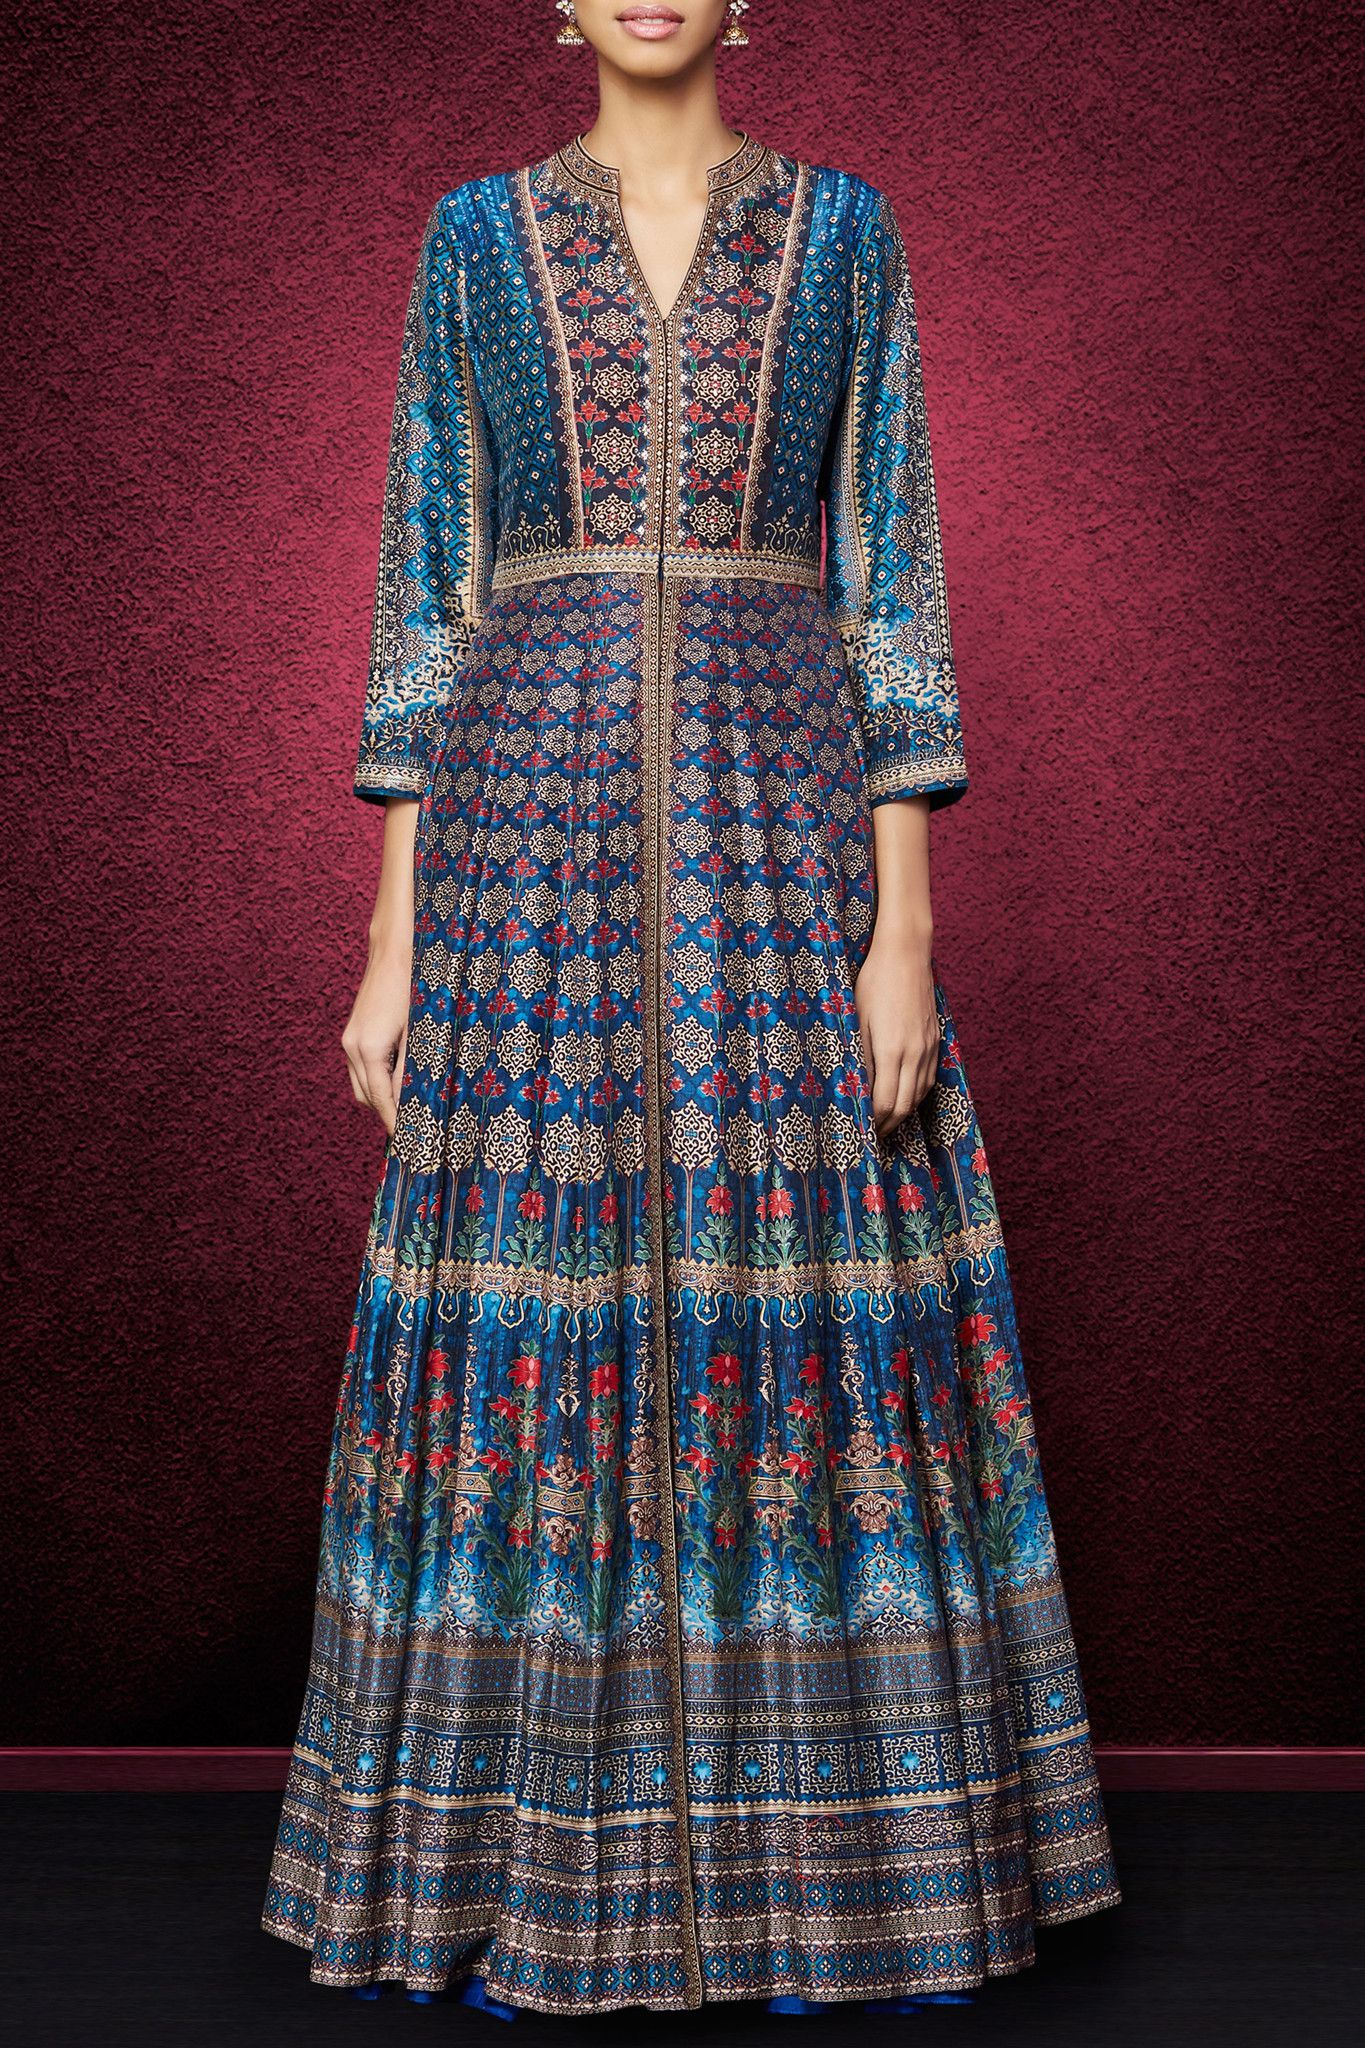 Shop Anita Dongre S The Vrinati Jacket At Viva Luxe With Free Uk Delivery Indian Fashion Designers Fashion Indian Fashion